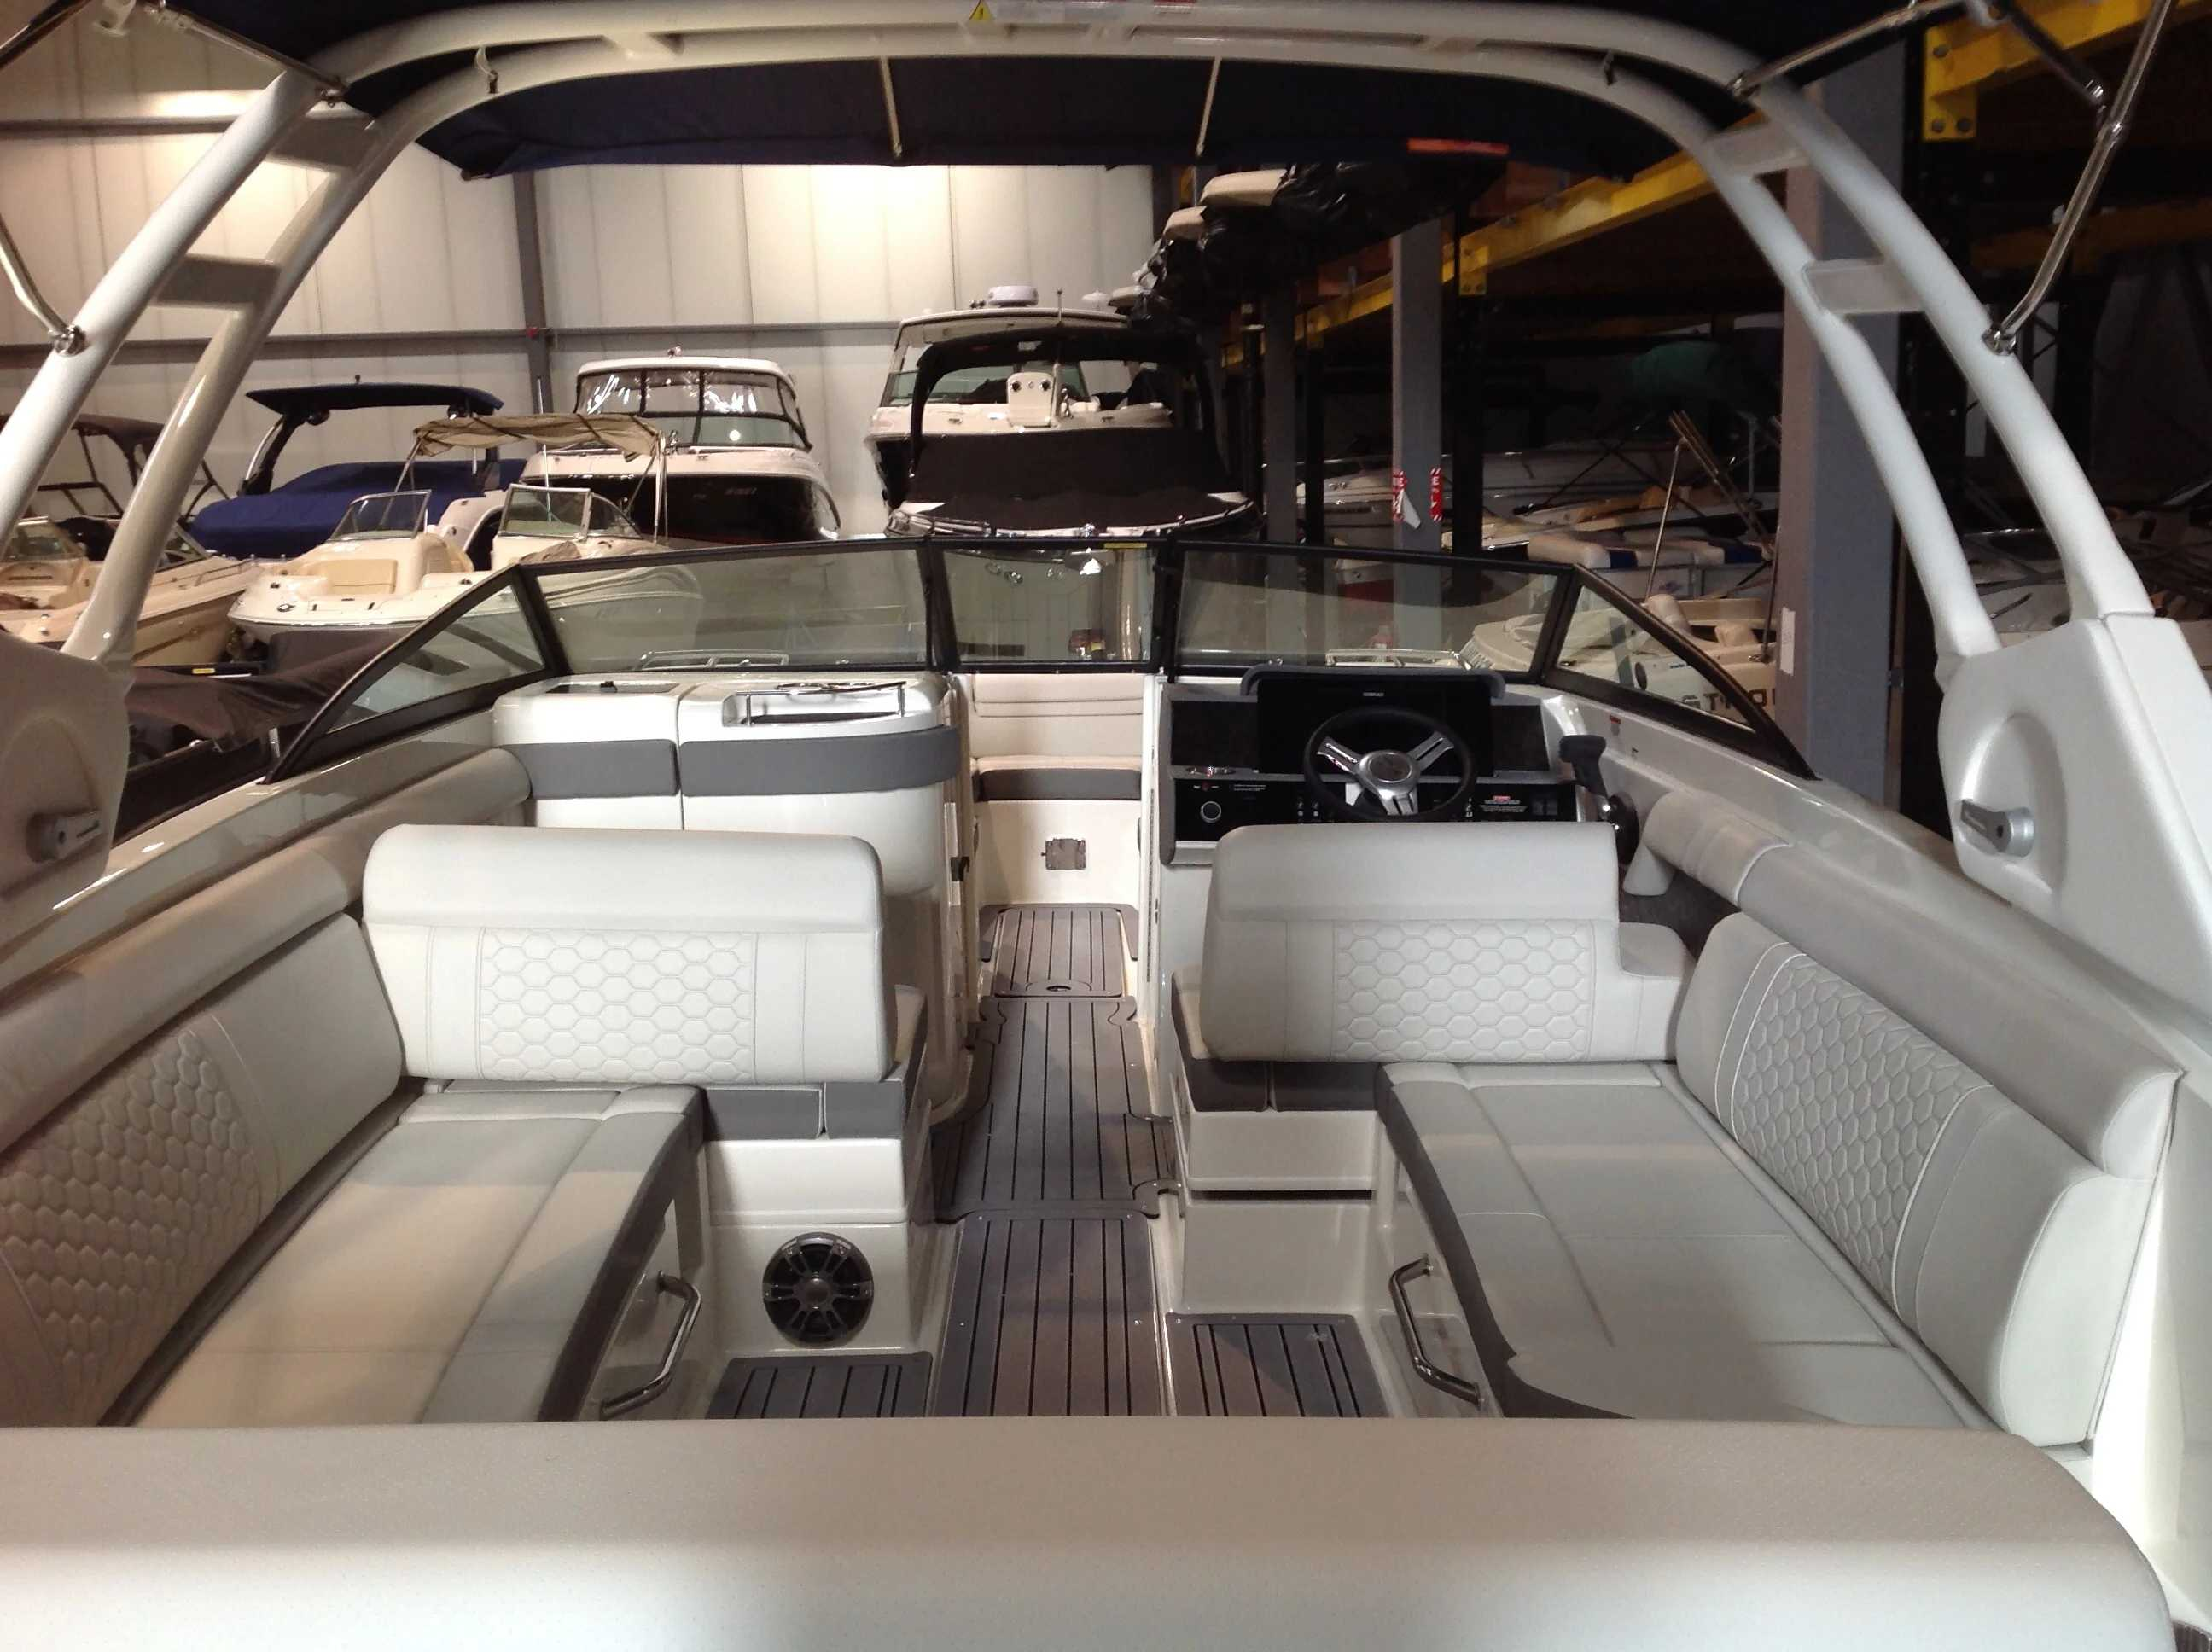 2021 Sea Ray boat for sale, model of the boat is 270 SDX & Image # 20 of 21